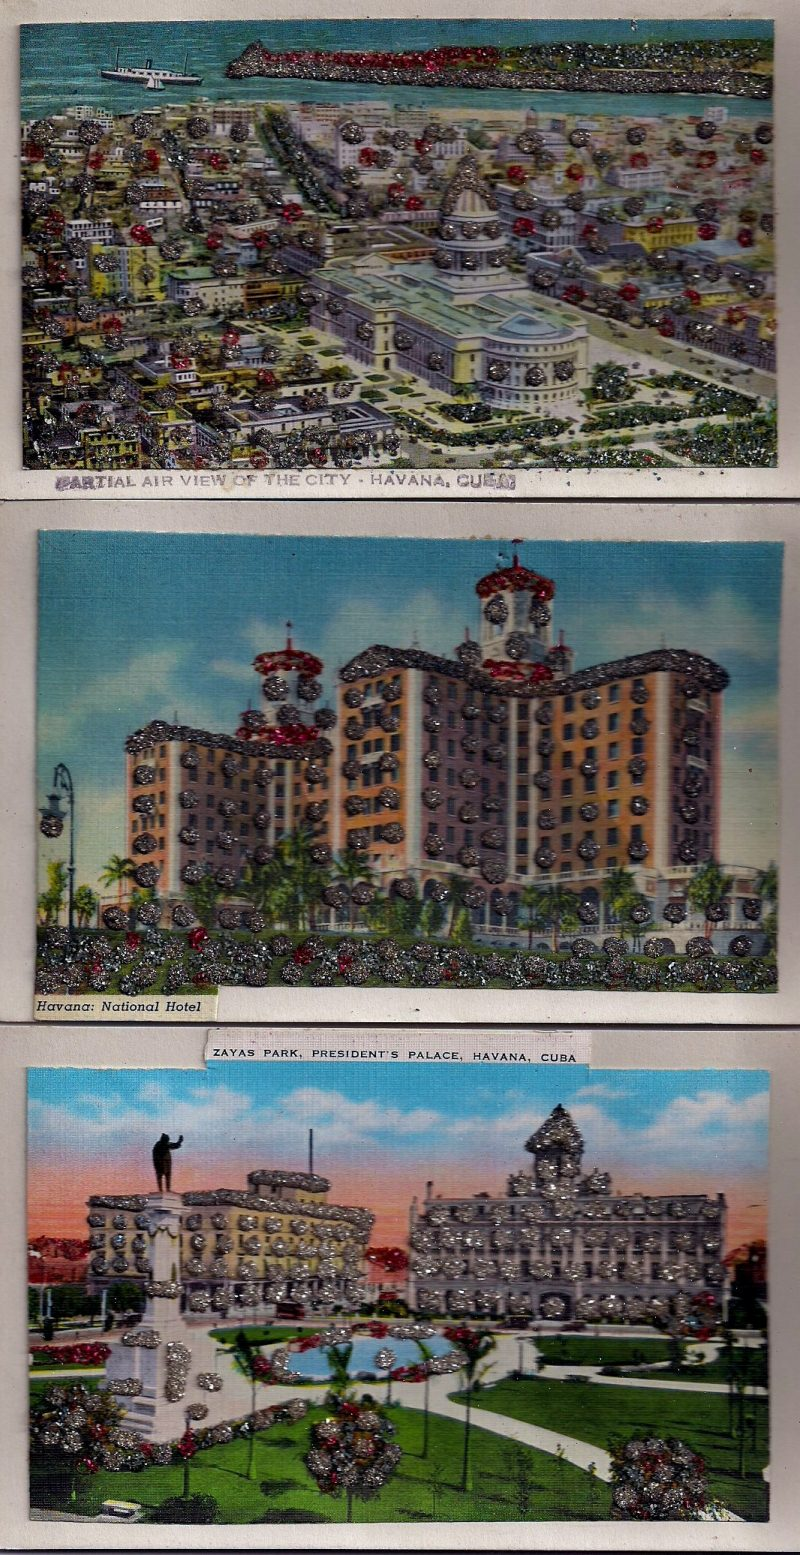 Havana Cuba, Set of 3 Vintage Postcards with tons of glitter as highlights, 5.5 x 3.5 inches each, $25 for the set.